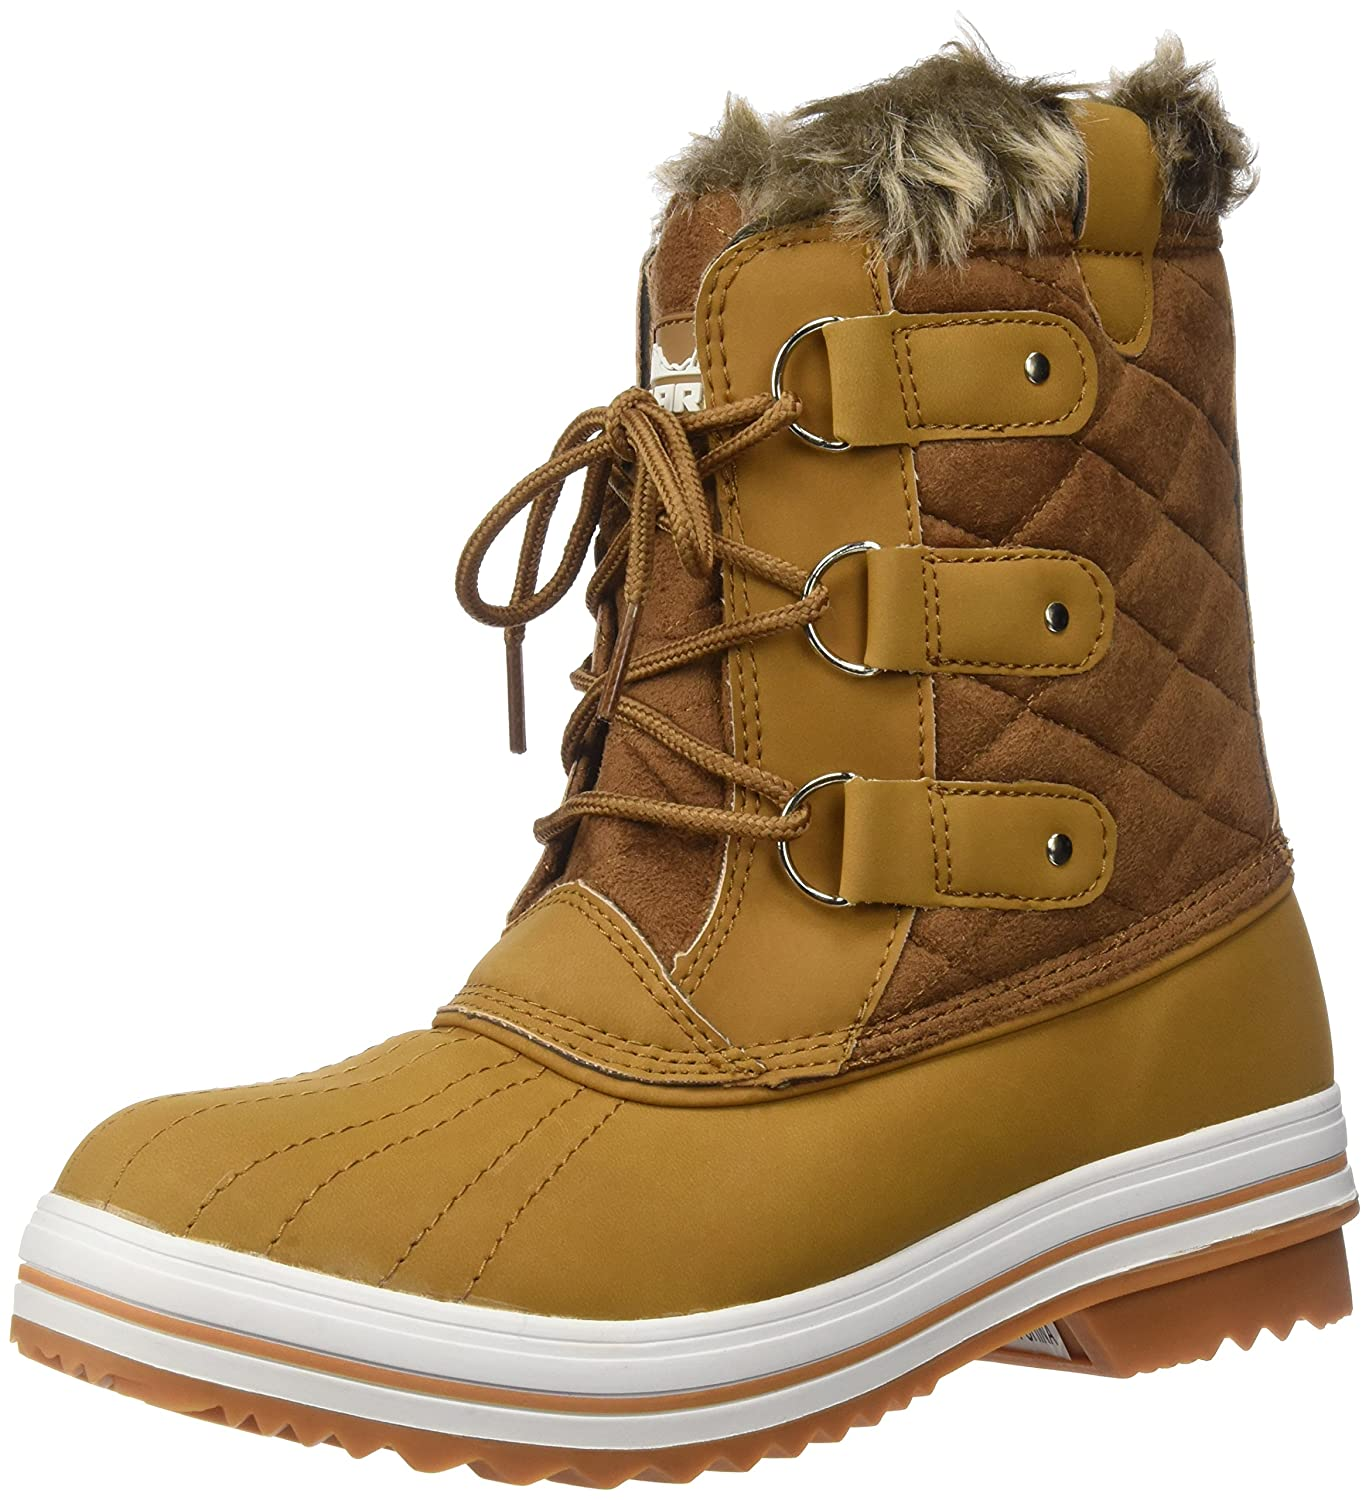 Polar Products Womens Snow Boot Quilted Short Winter Snow Rain Warm Waterproof Boots B00YURGM1K 40 M EU / 9 B(M) US|Tan Suede